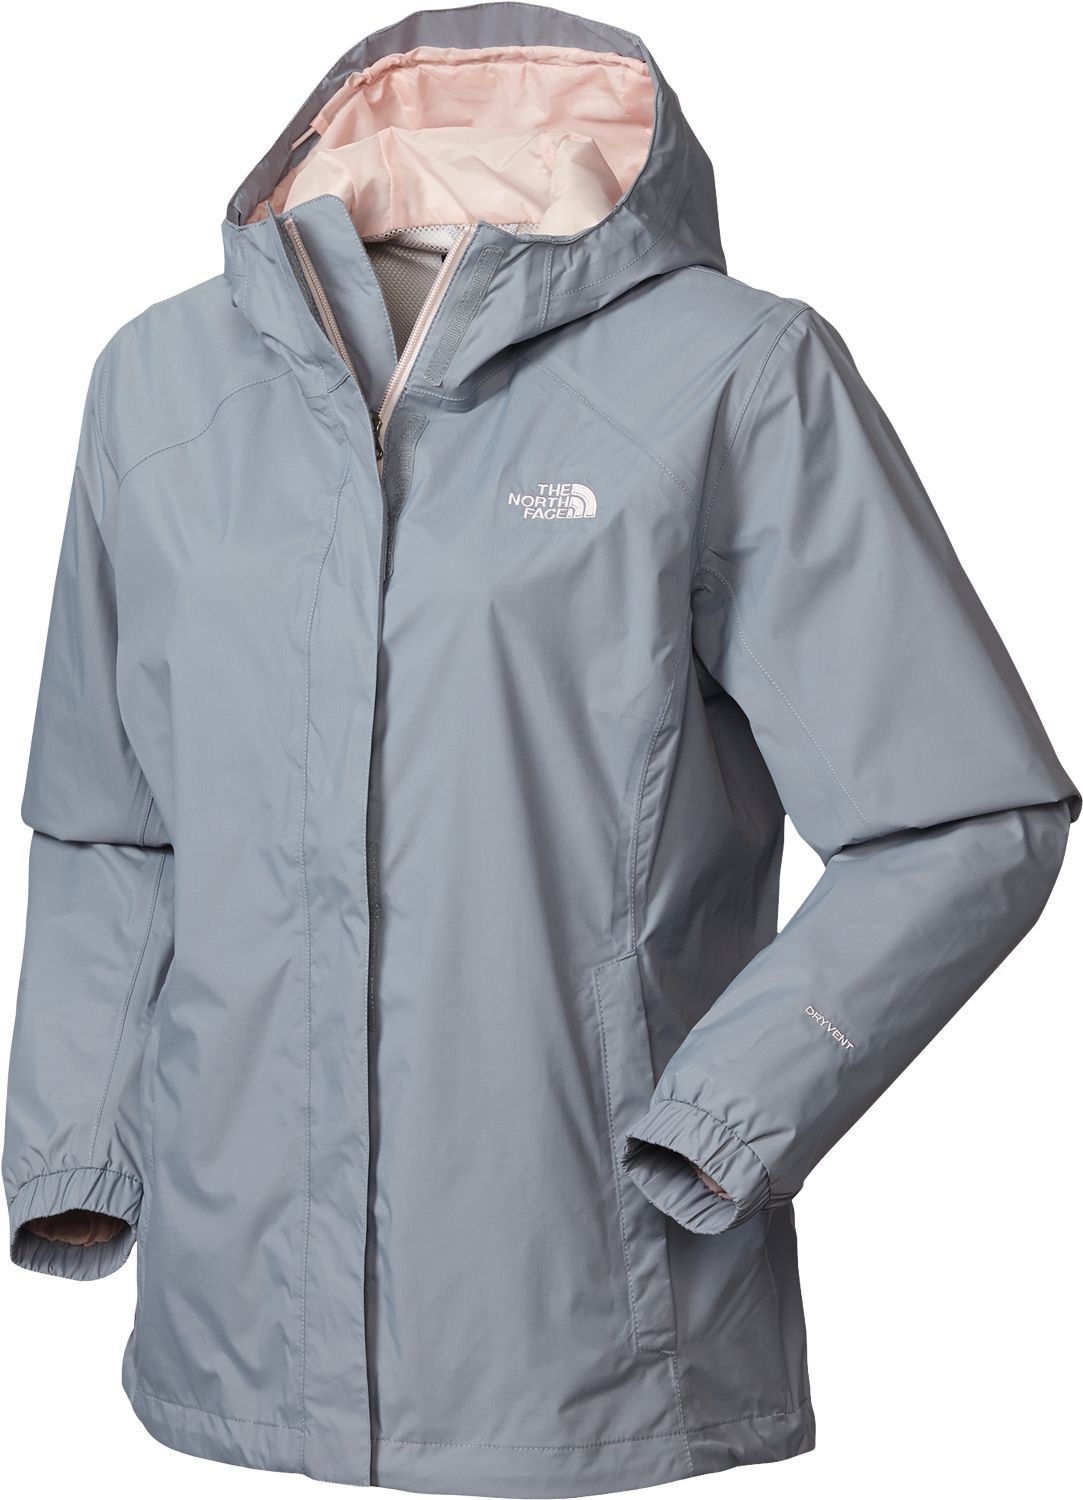 72c569726832 The North Face Women s Stinson Rain Jacket in 2019